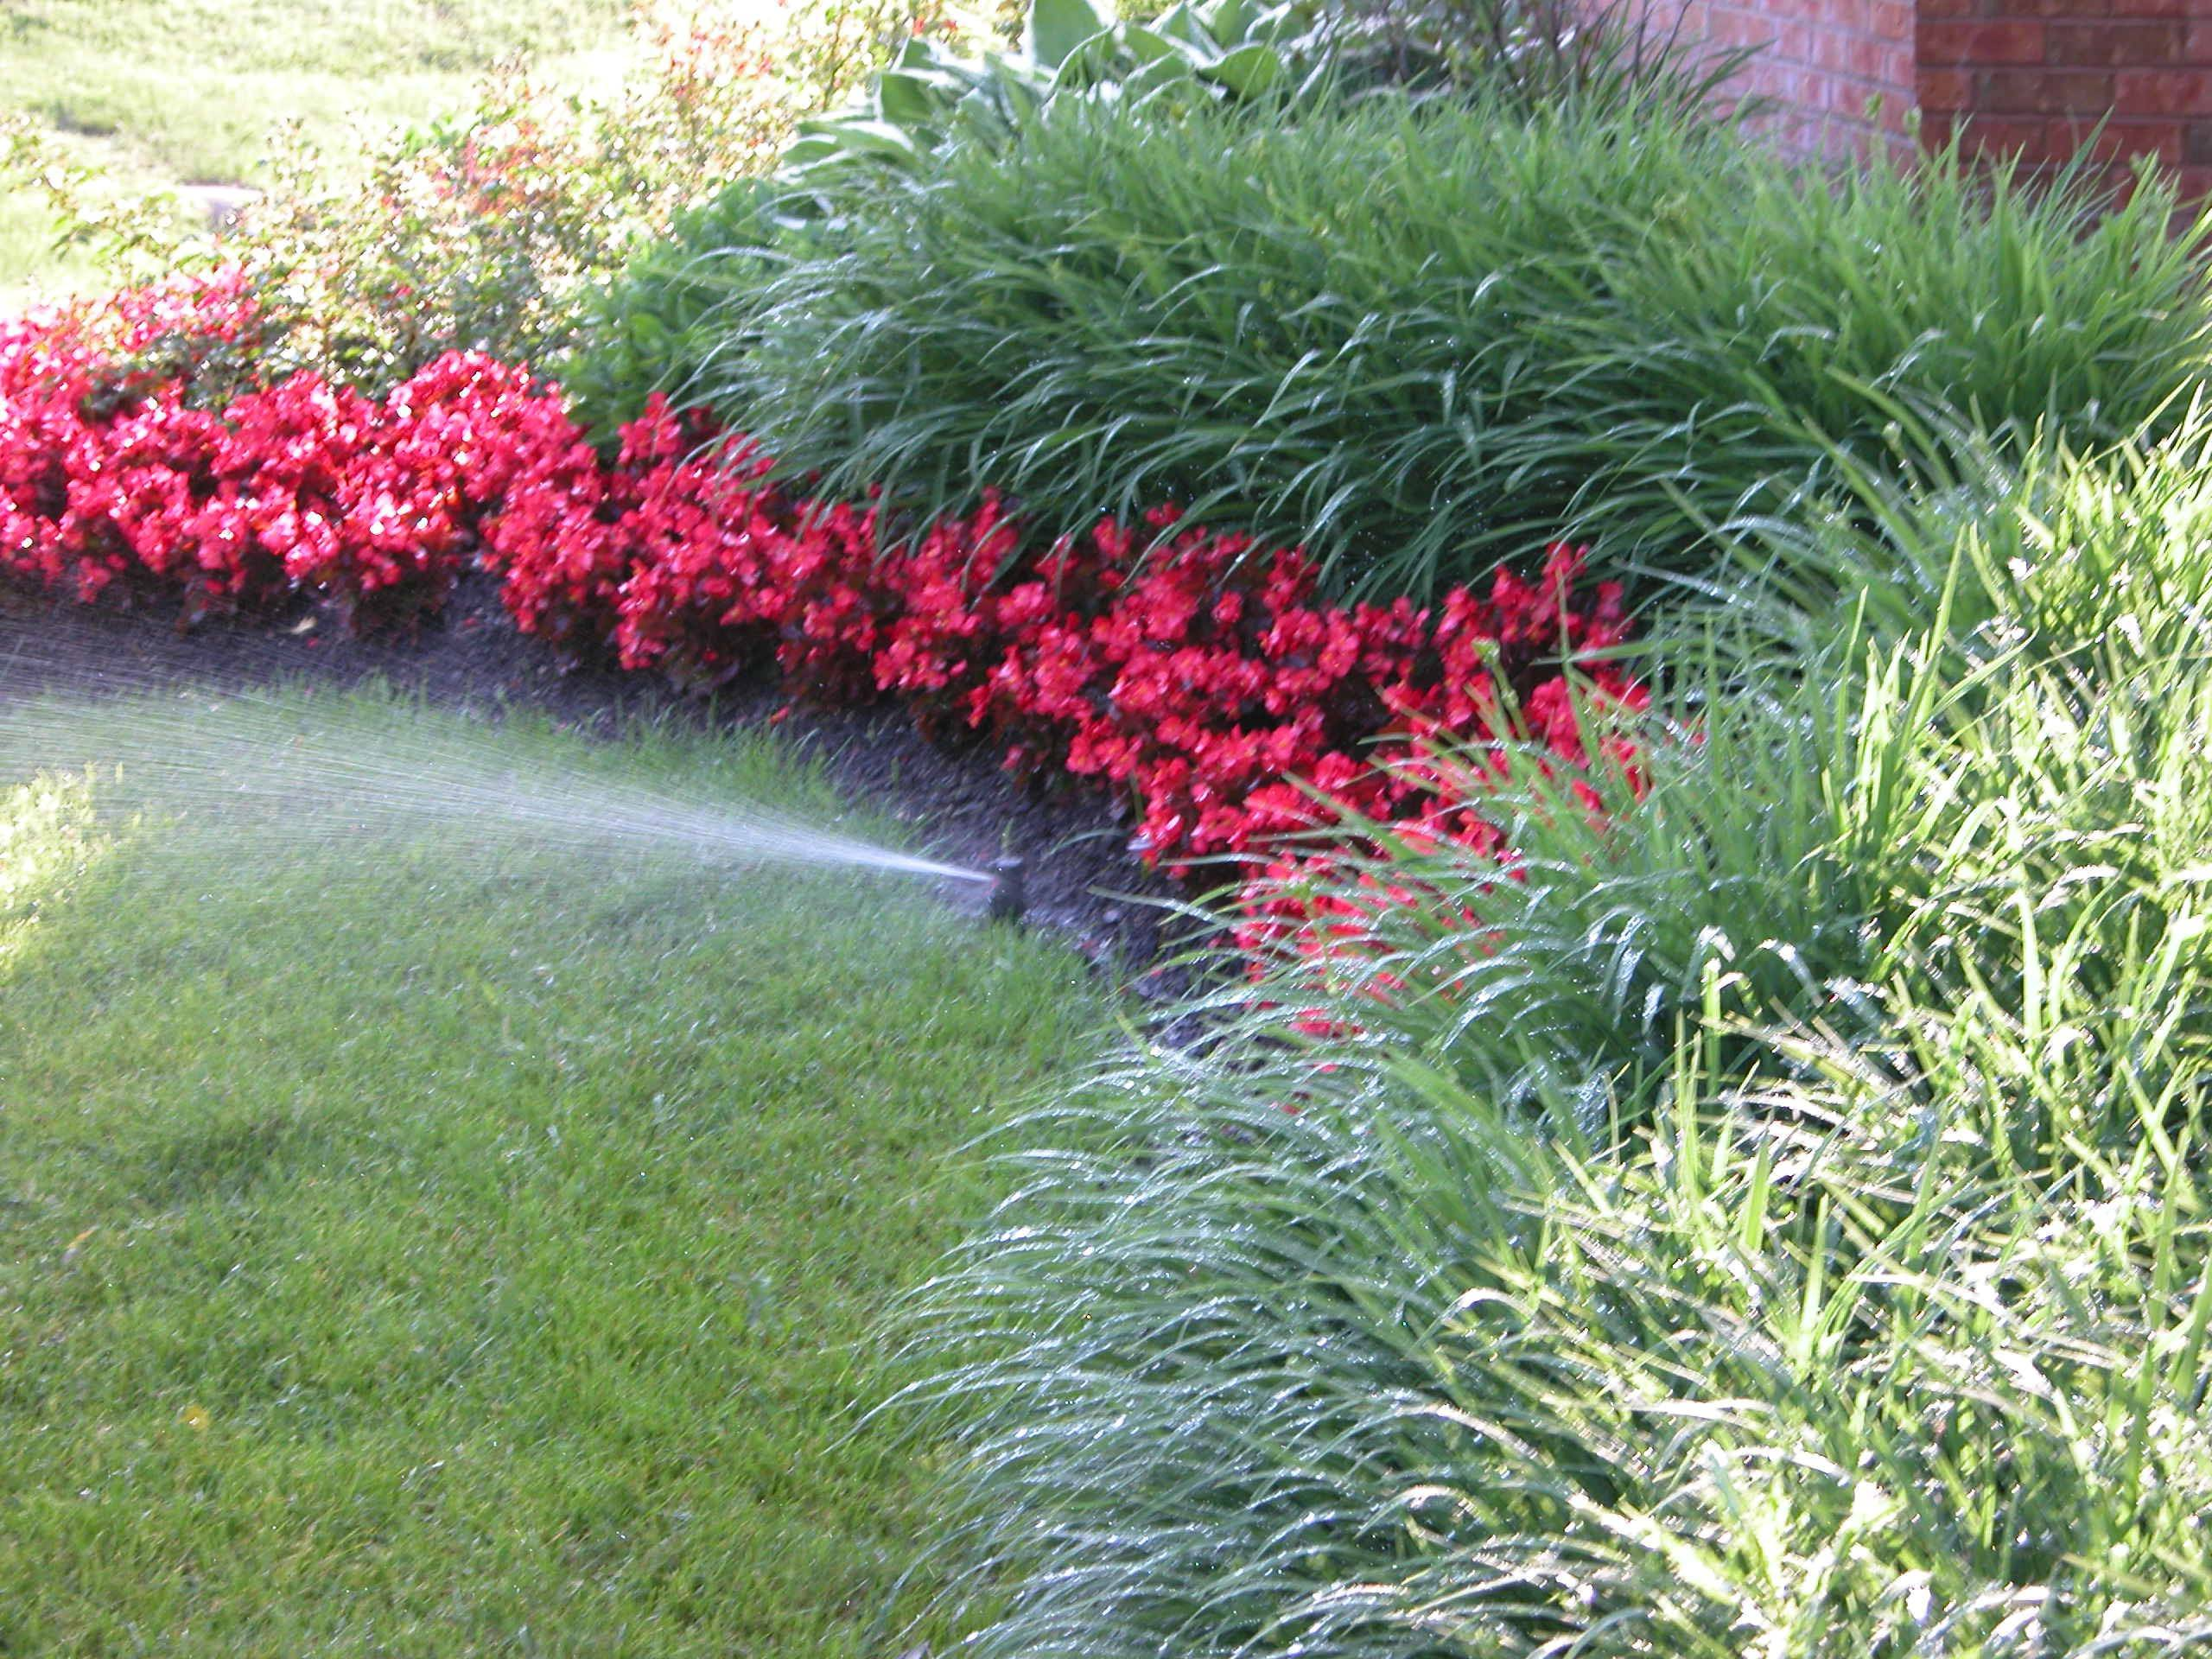 Irrigation systems allow for lawns to be watered prperly without wasting water. Some systems are even connected to weather.com for more accurate water usage, said Colin Taheny of RYCO Design Group.